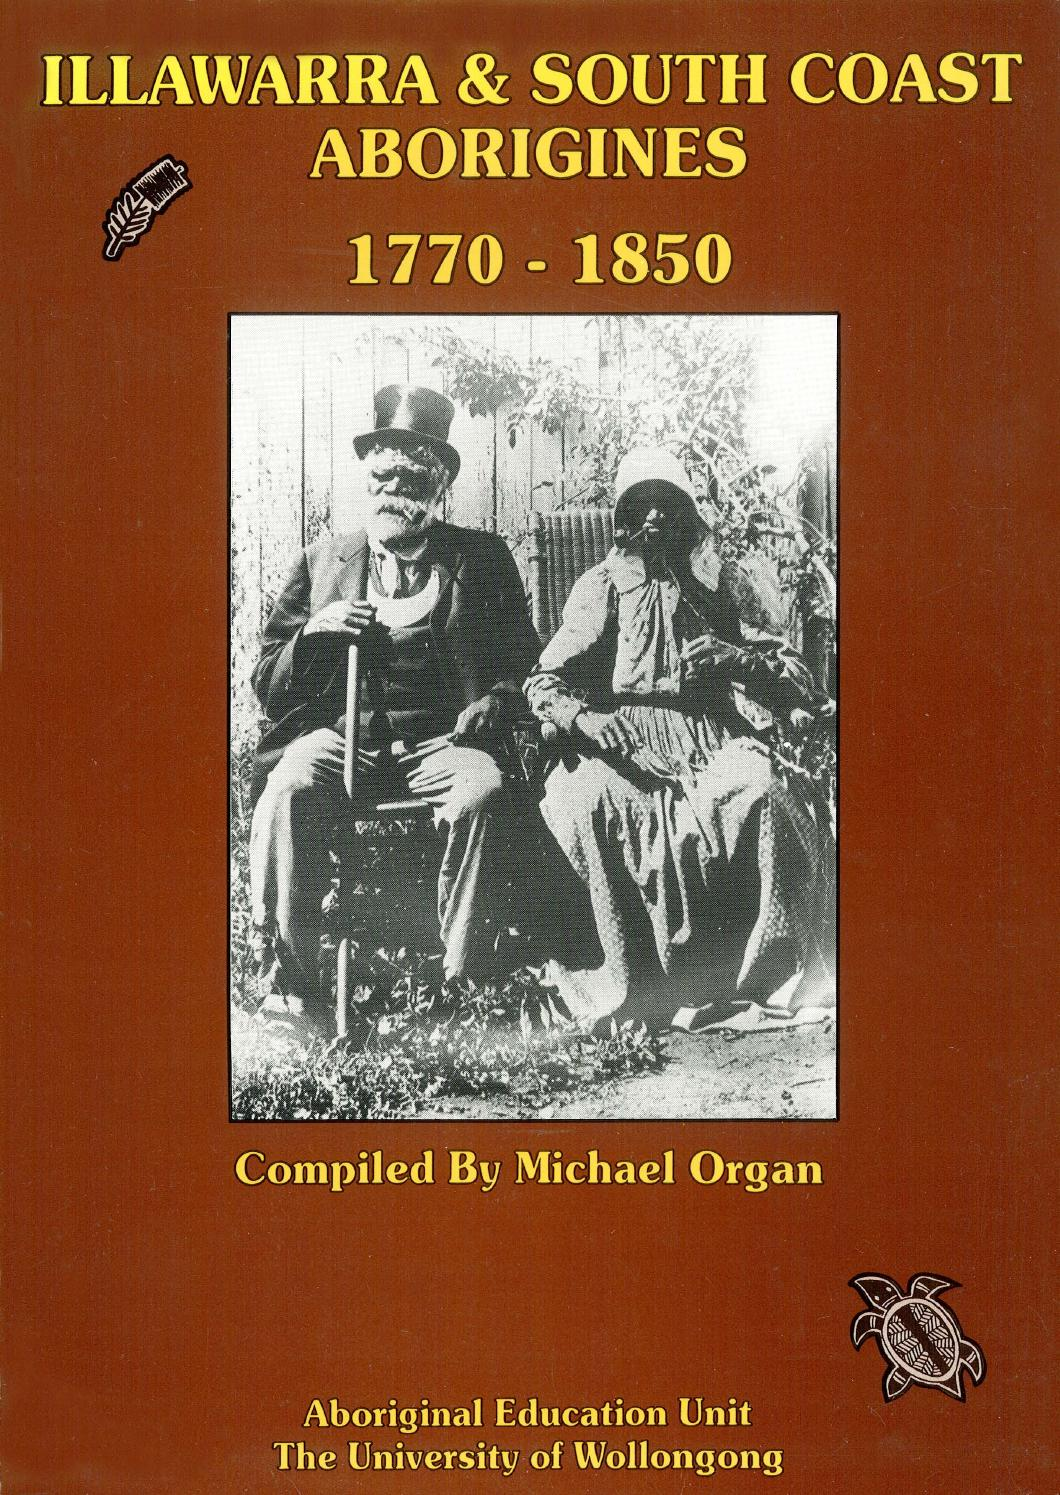 Illawarra and south coast aborigines 1770 1850 part 1 by uow illawarra and south coast aborigines 1770 1850 part 1 by uow library issuu nvjuhfo Choice Image